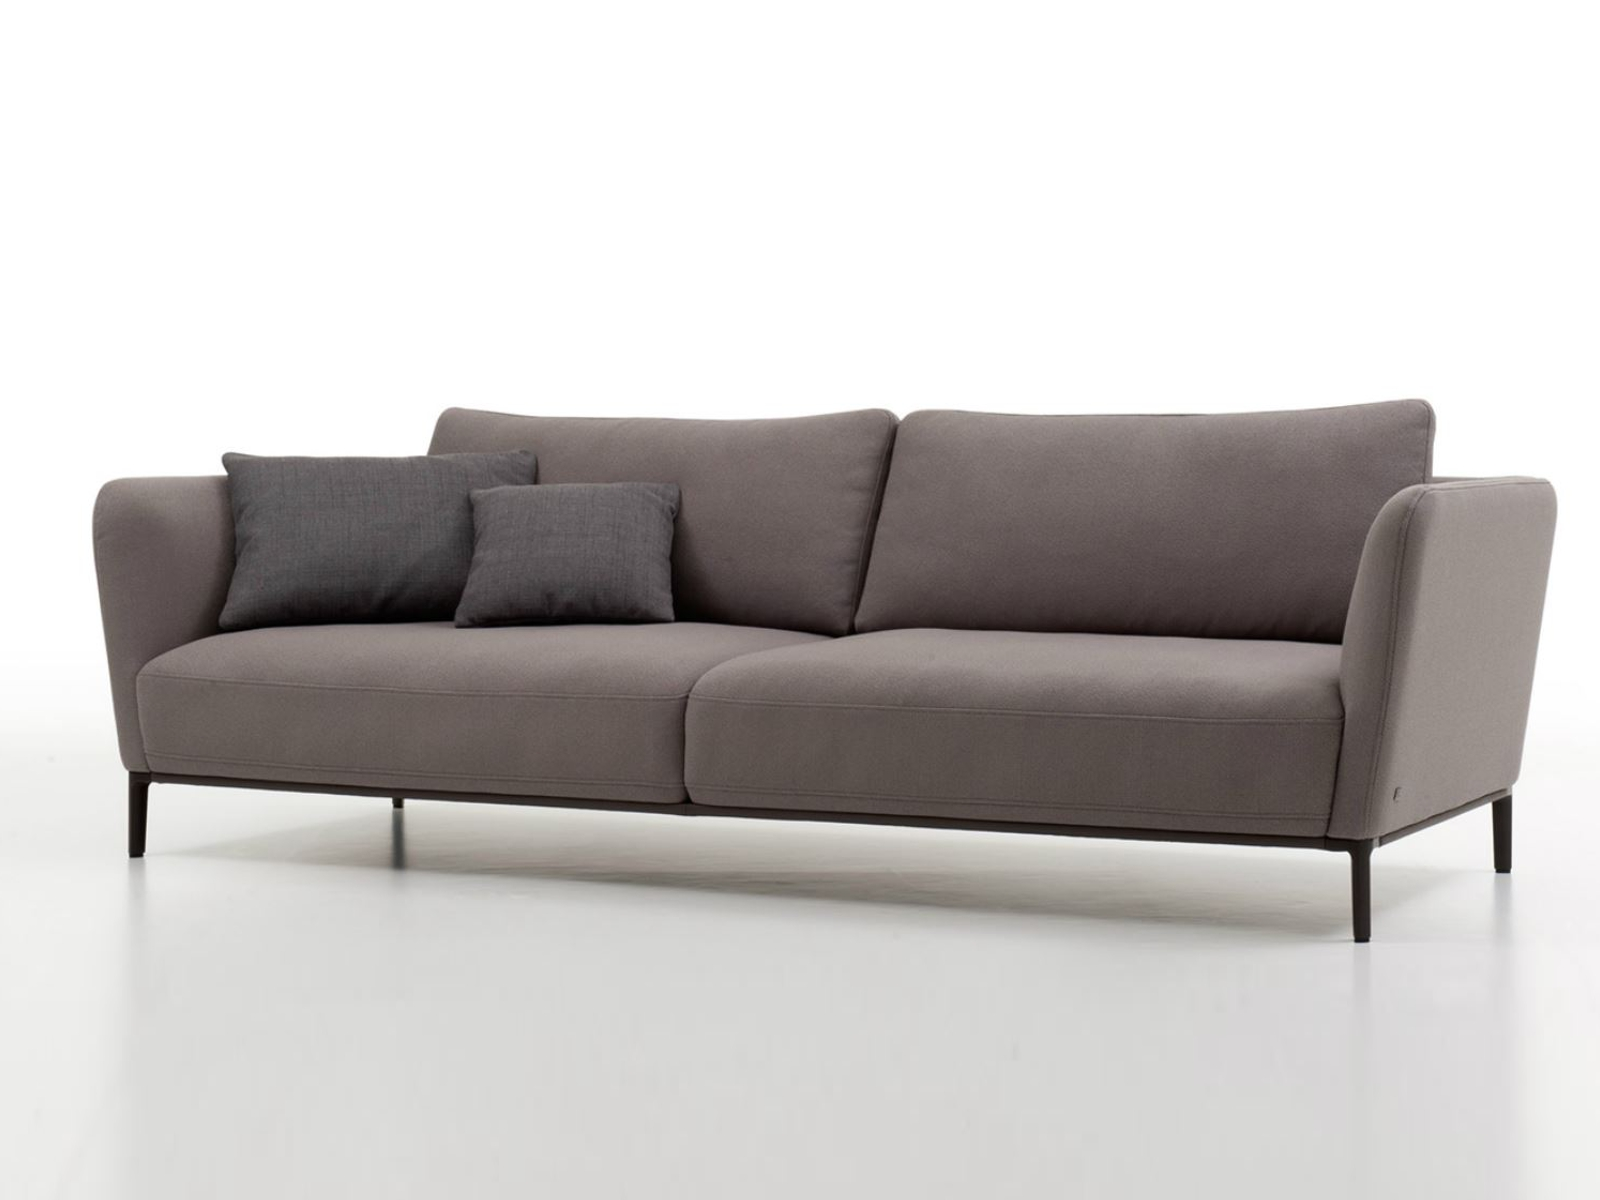 Minimalist Gray Cushion Modern Style Rolf Benz Sofa Design